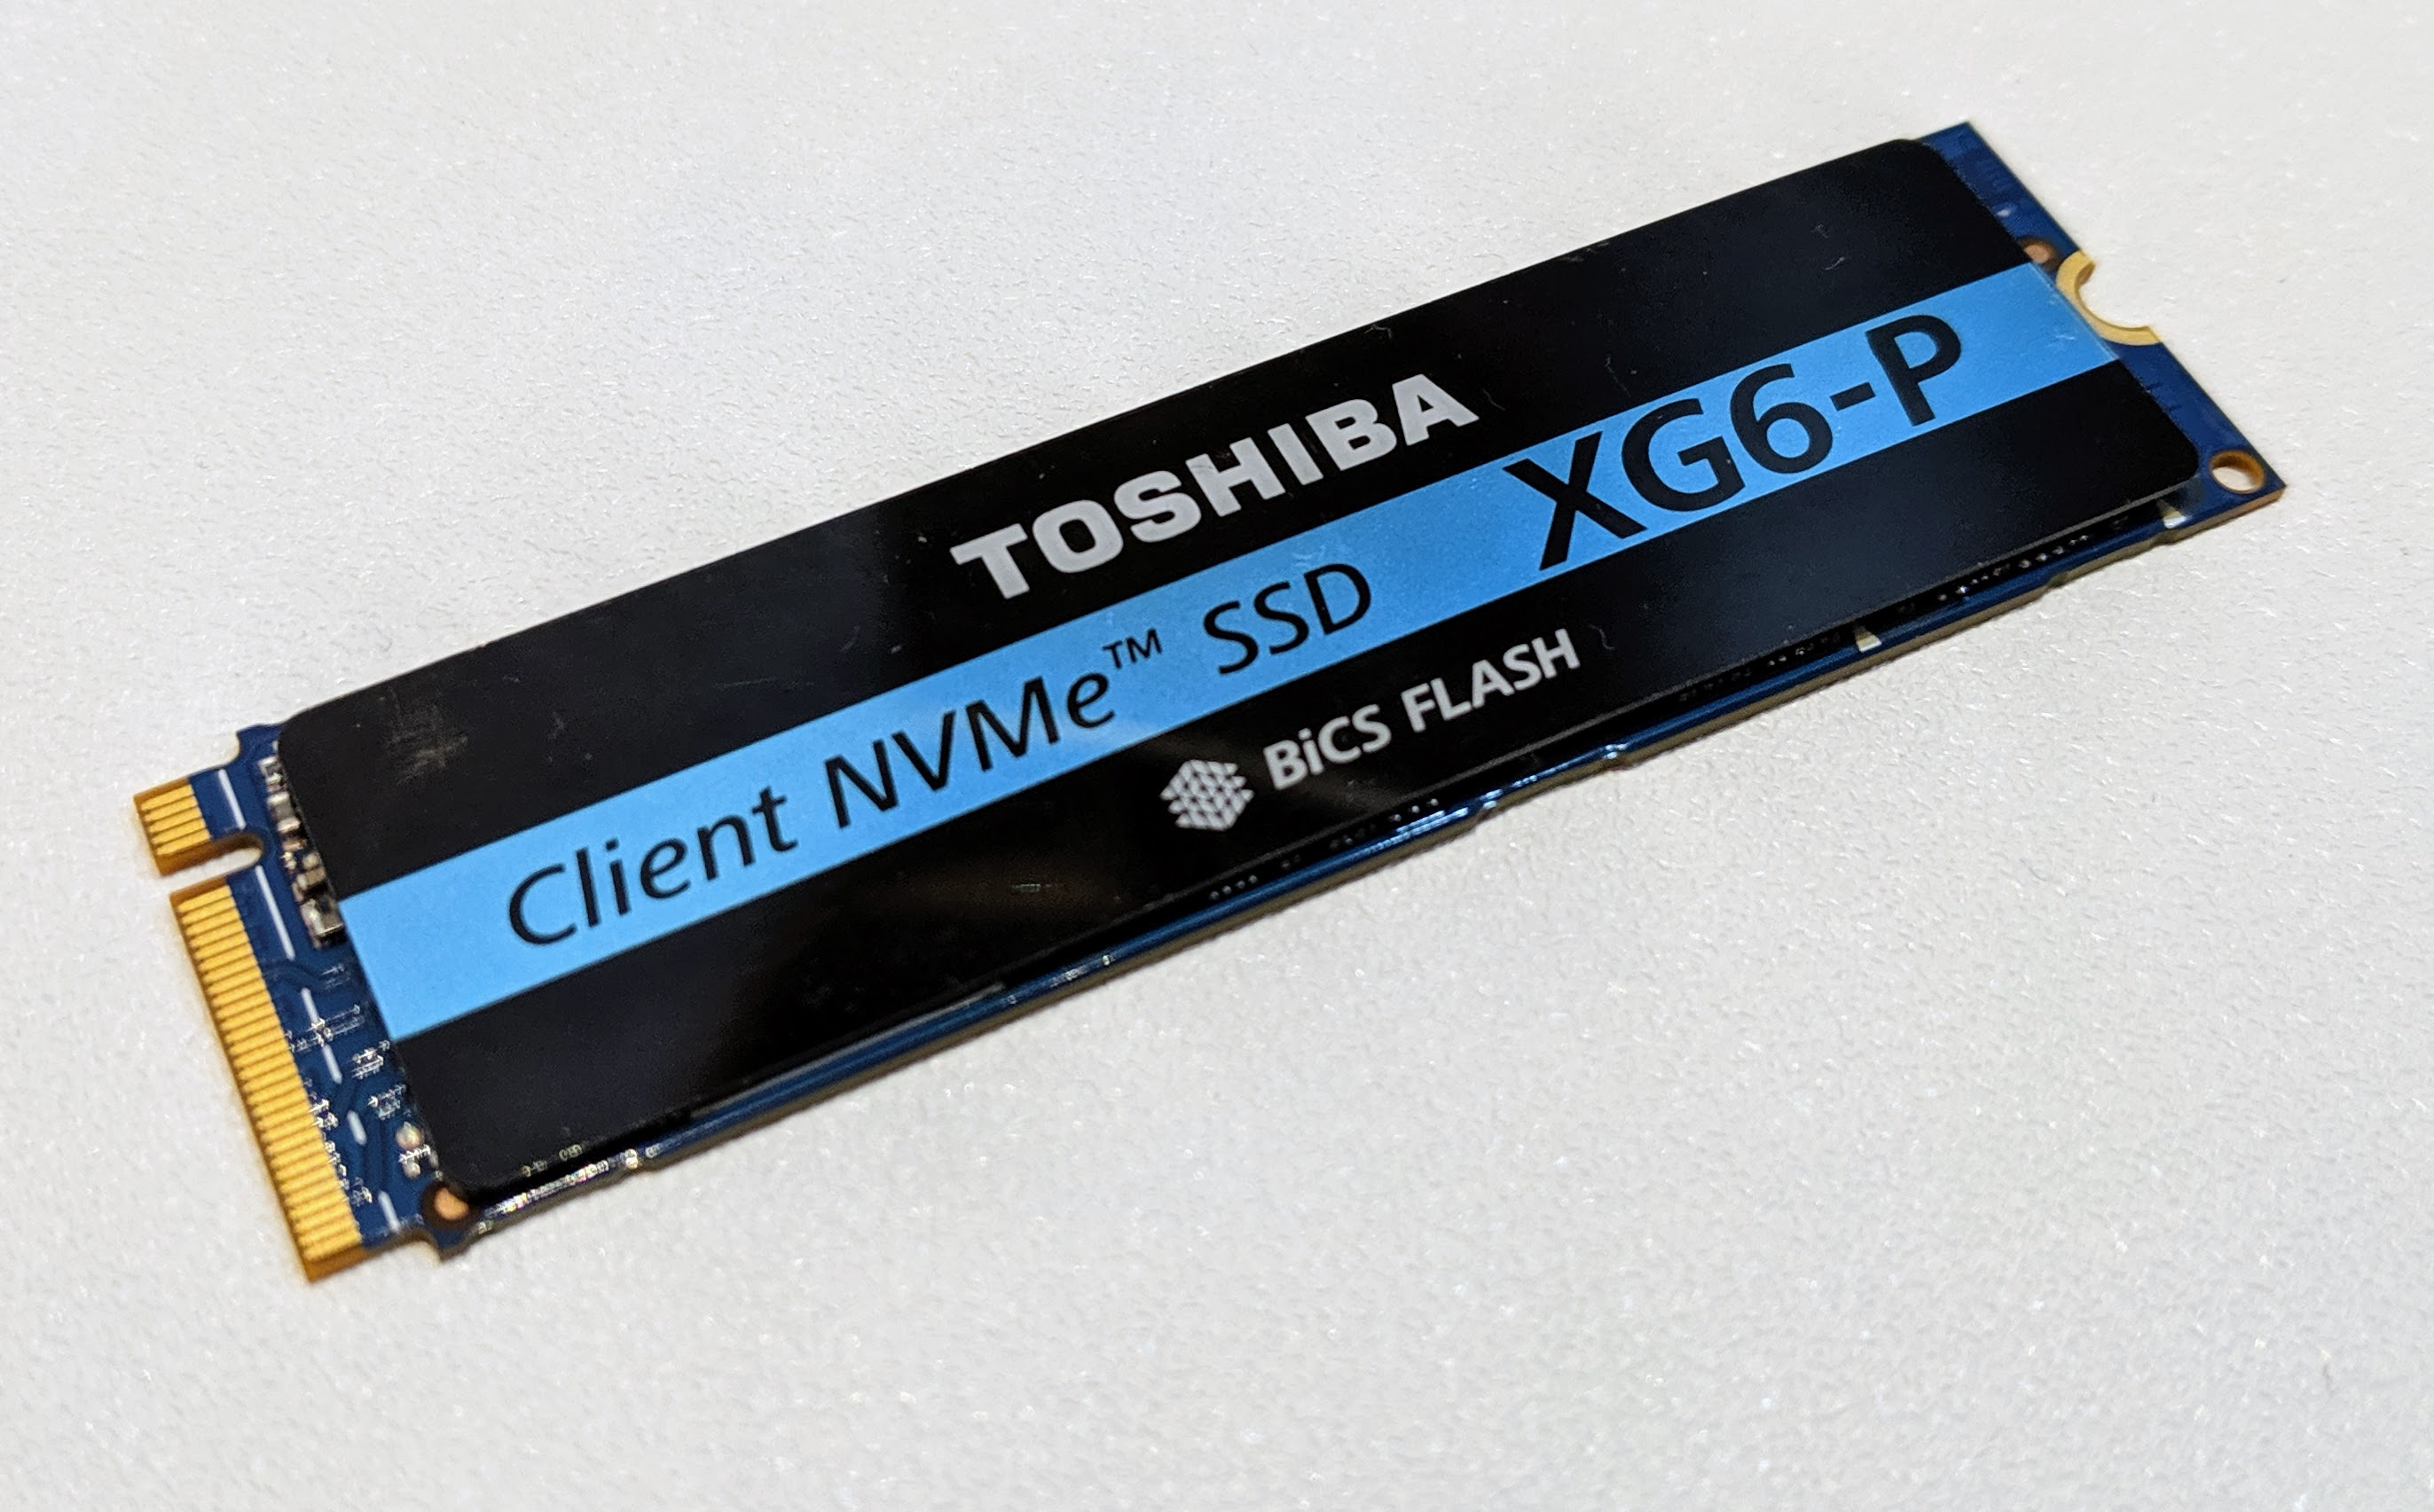 Toshiba Memory XG6 P At Computex 2019